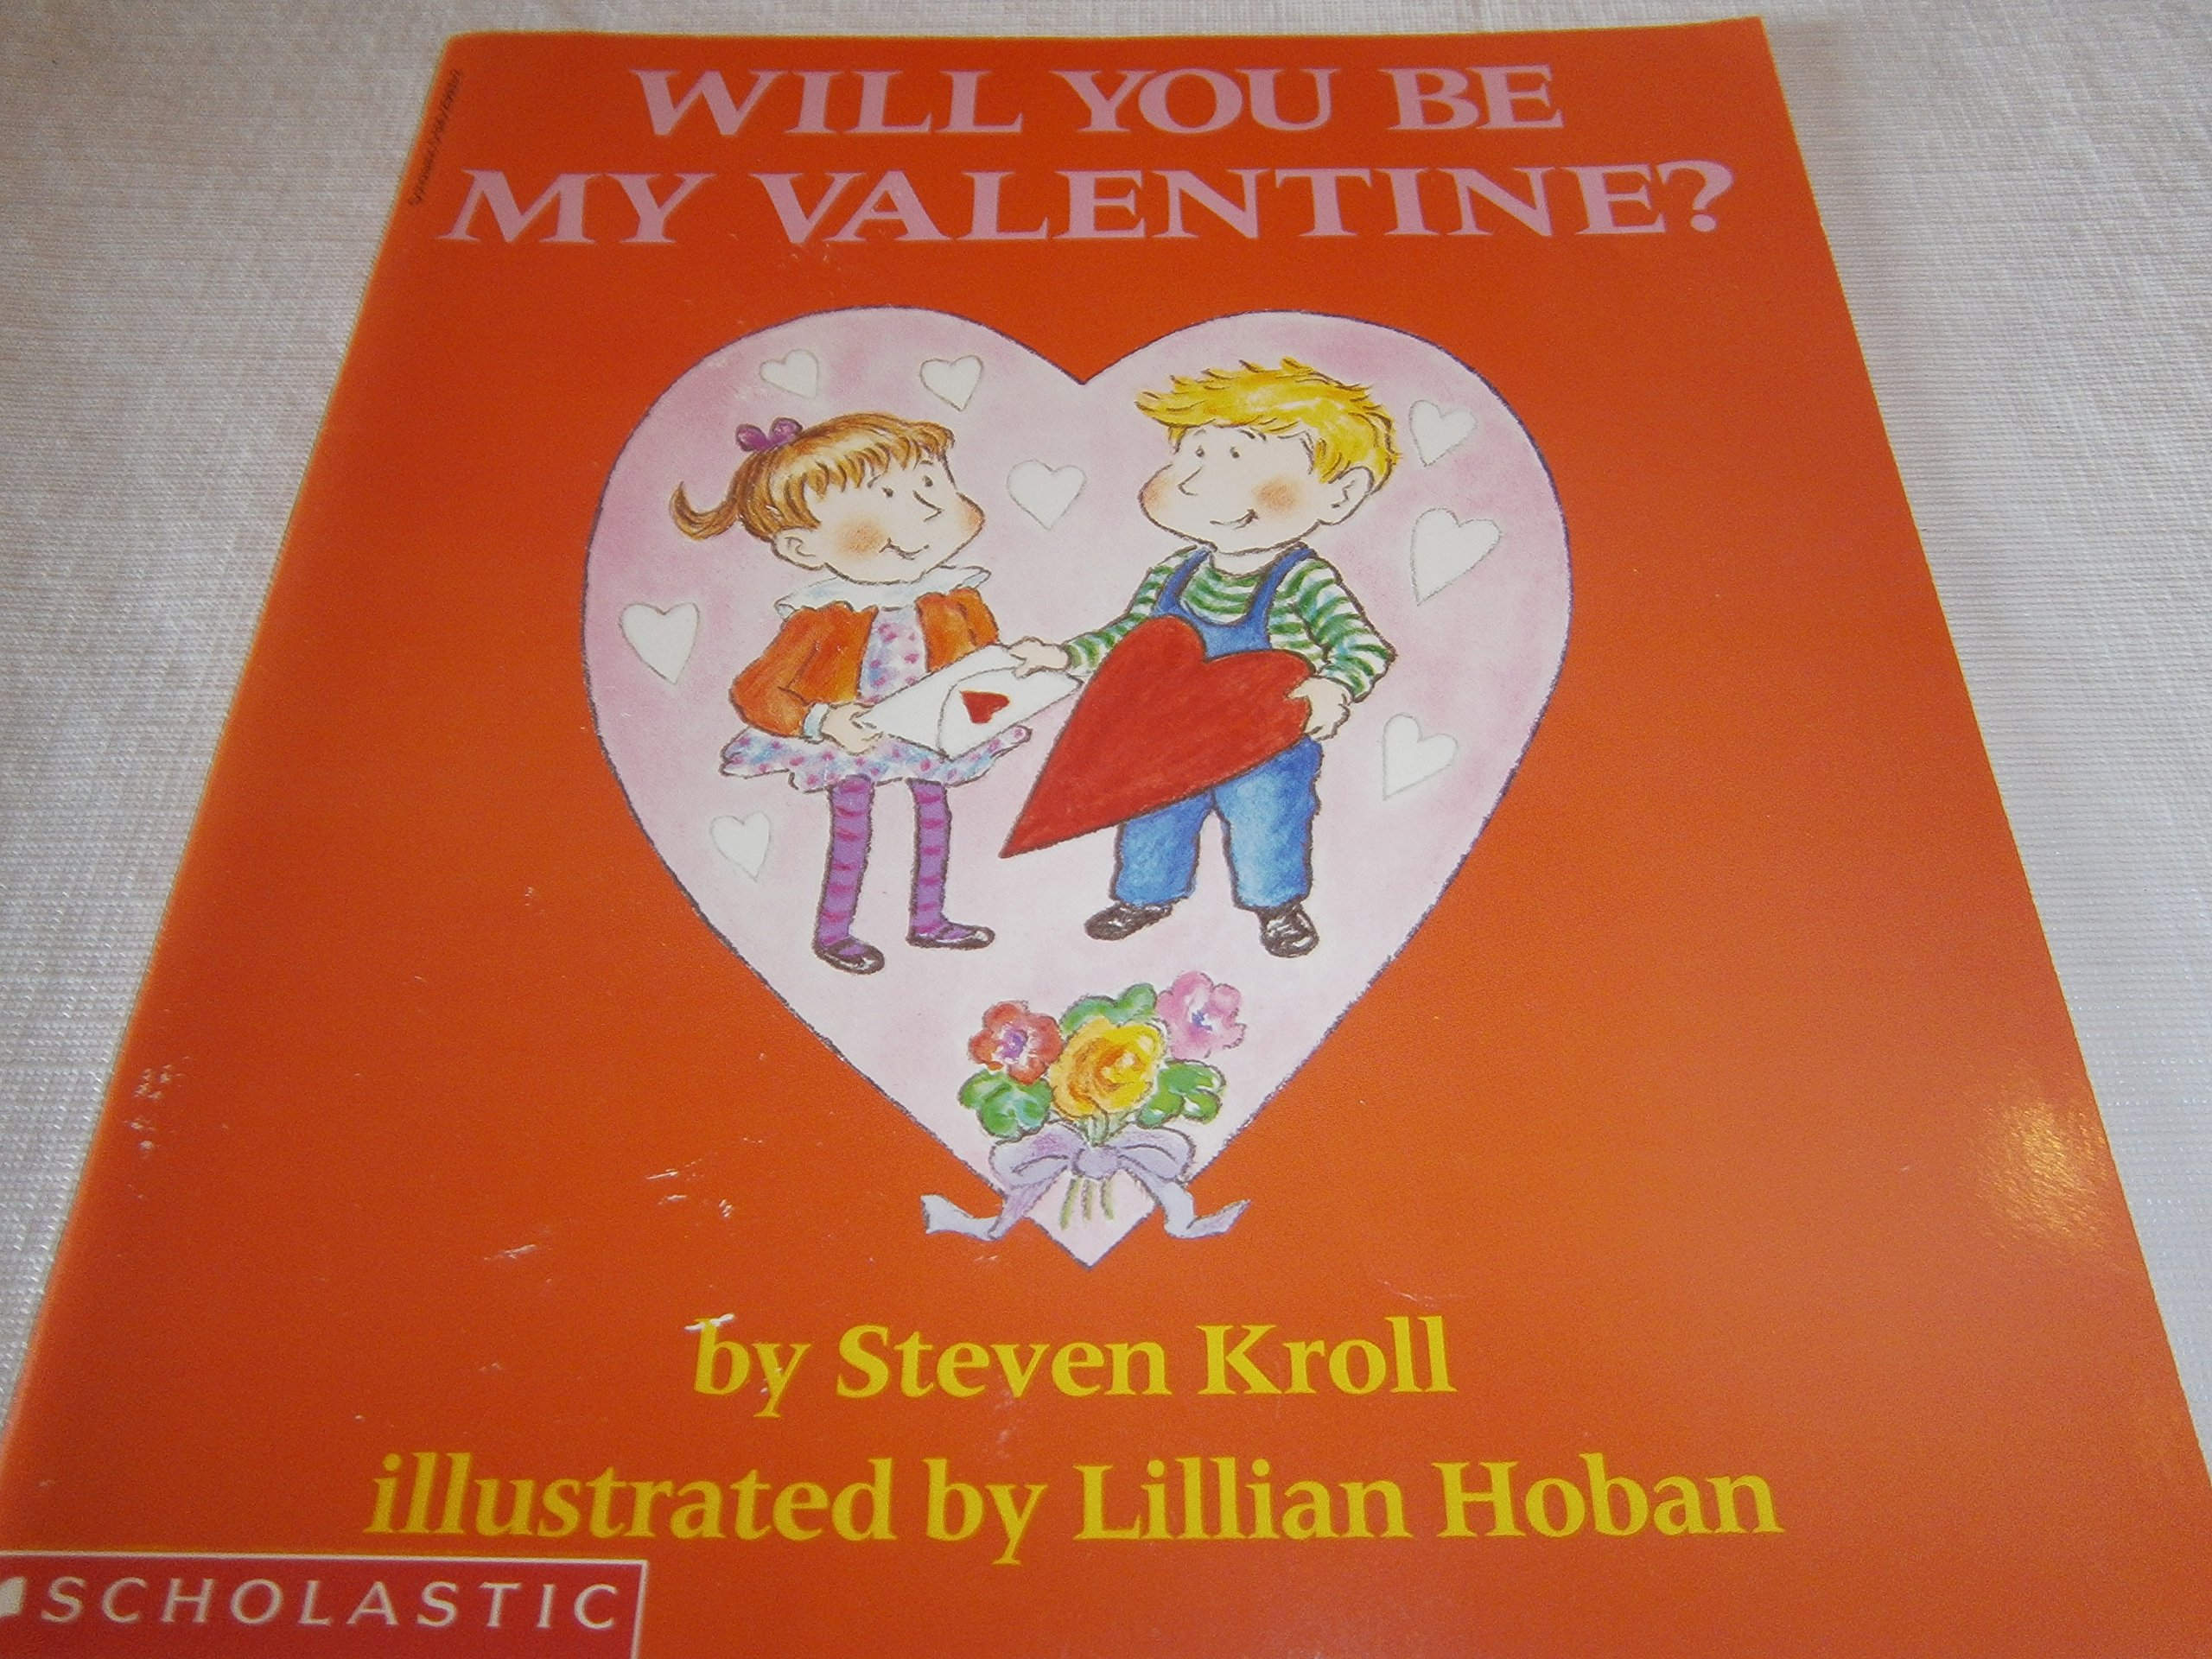 Will You Be My Valentine?: Steven Kroll: 9780590256094: Amazon.com: Books